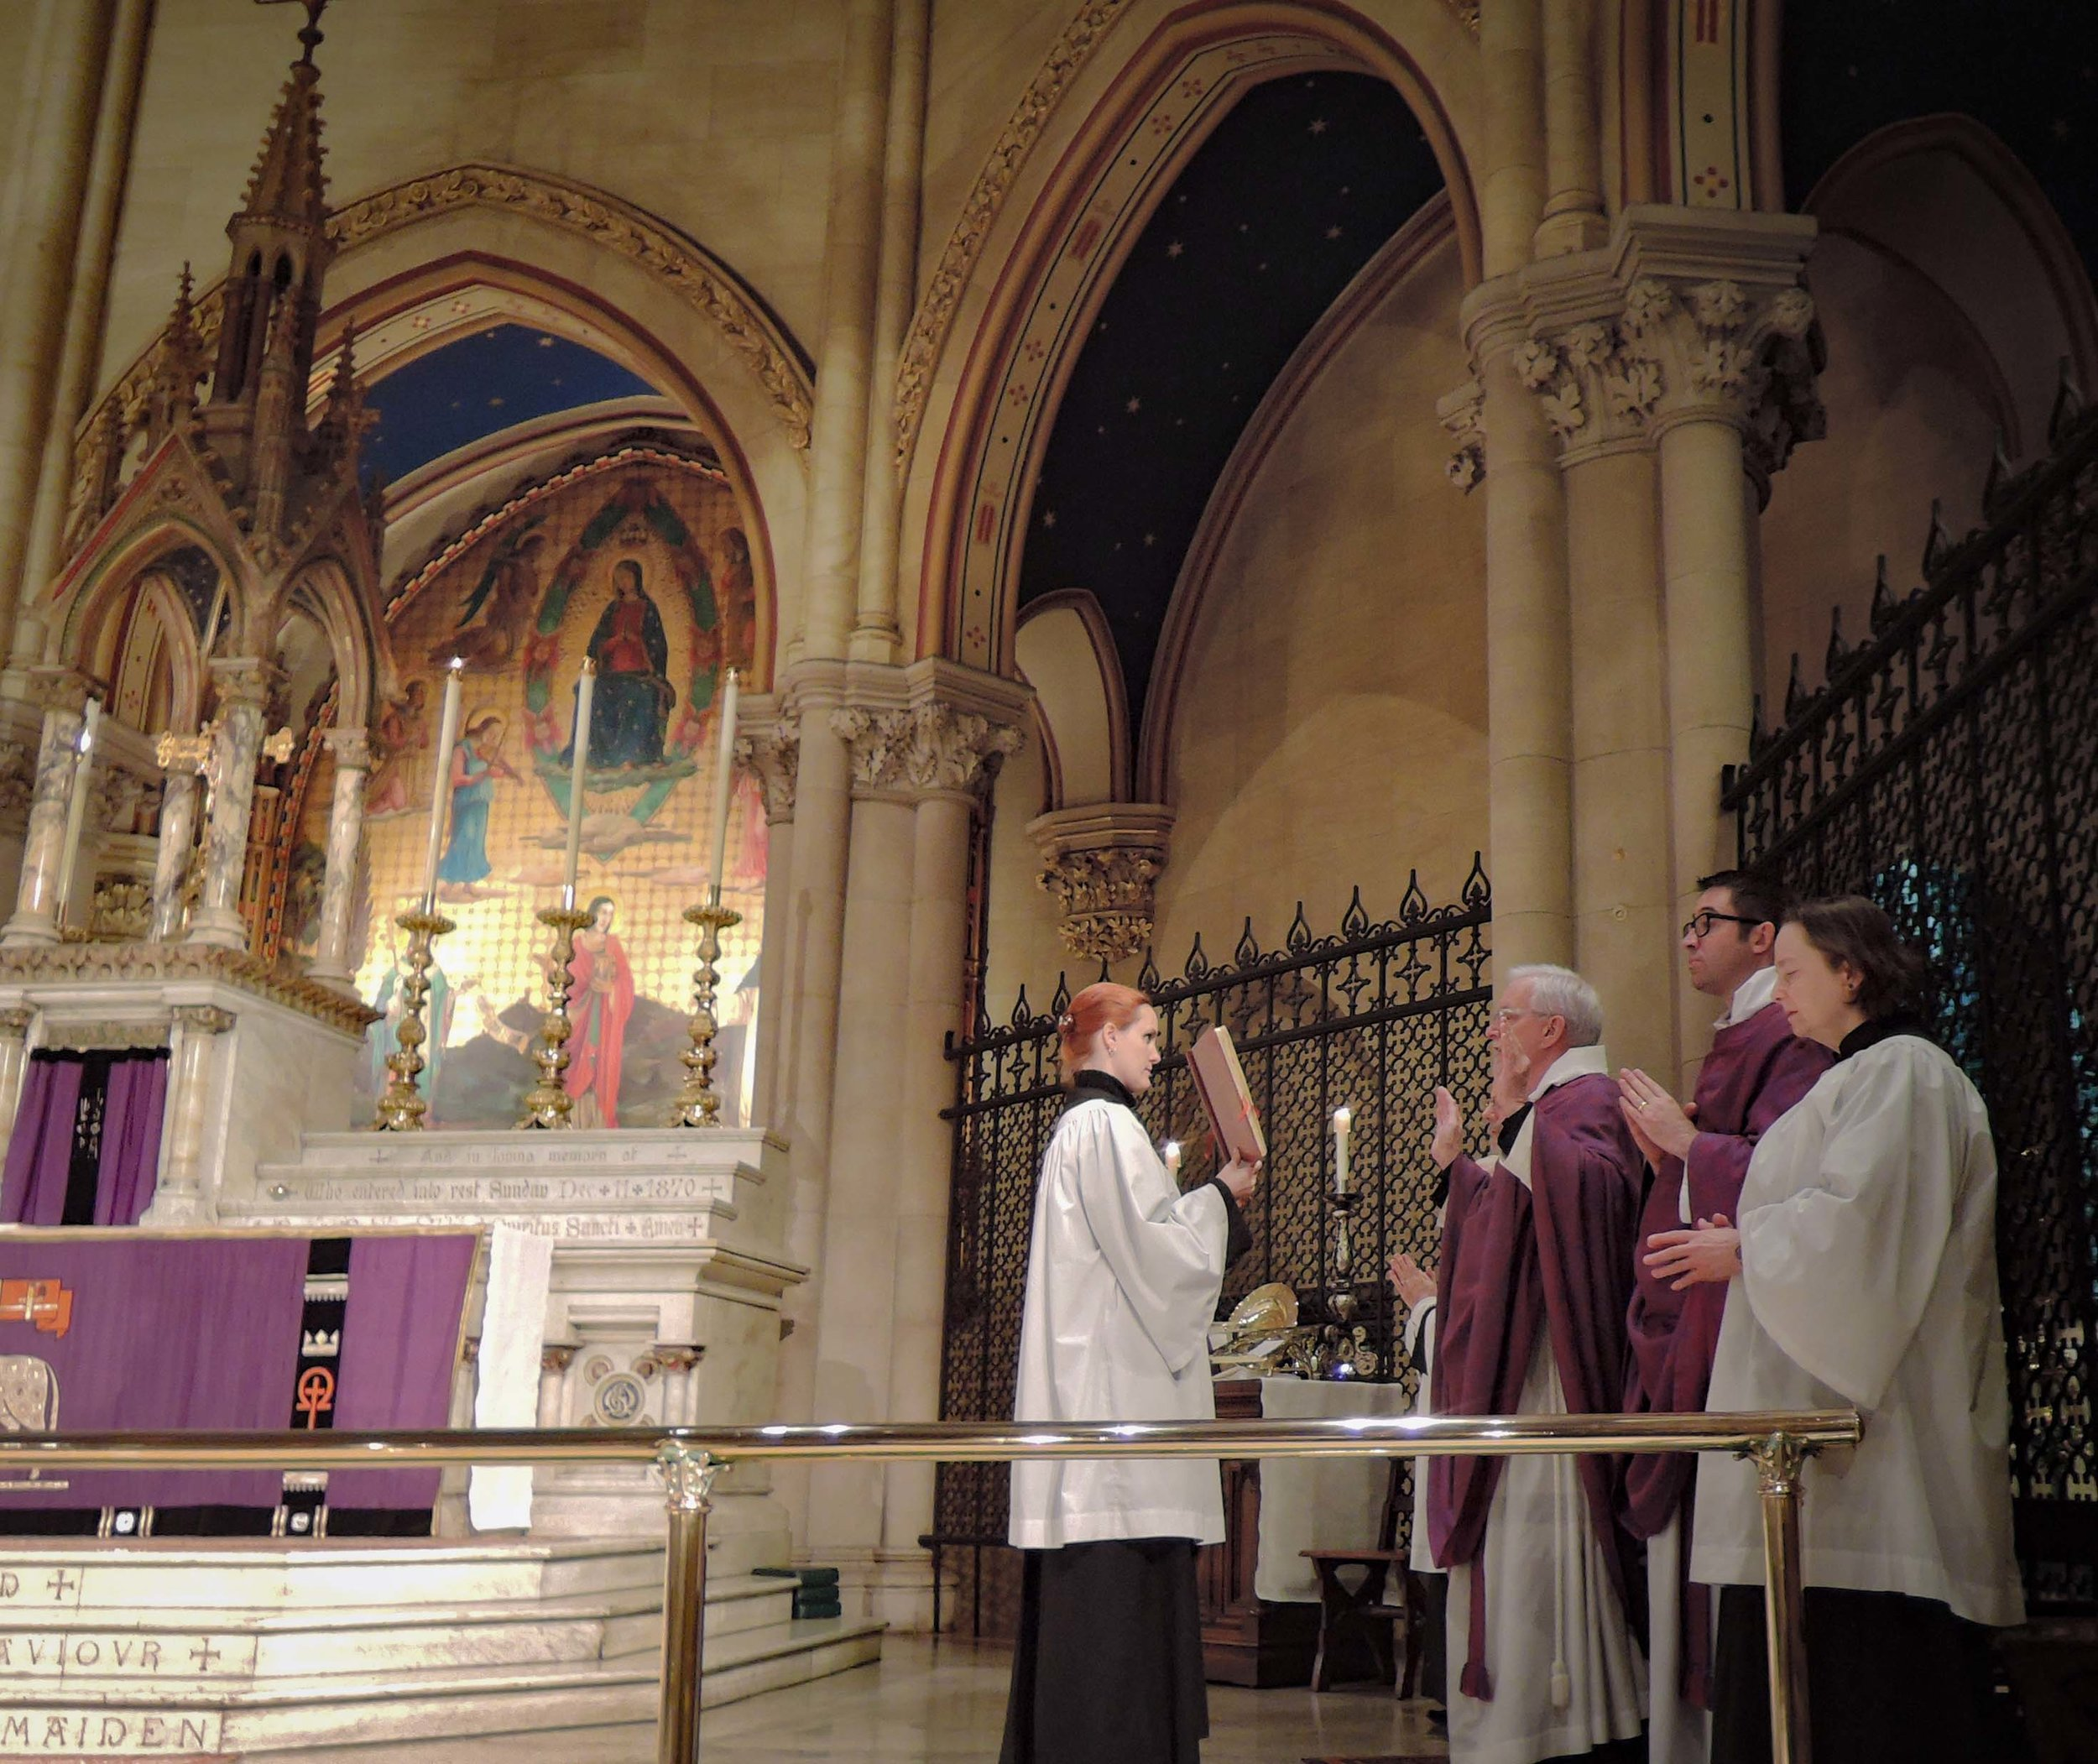 Father Jim Pace sings the collect of the day as Mass begins on Sunday, March 18.   Photo by Sr. Monica Clare, C.S.J.B.